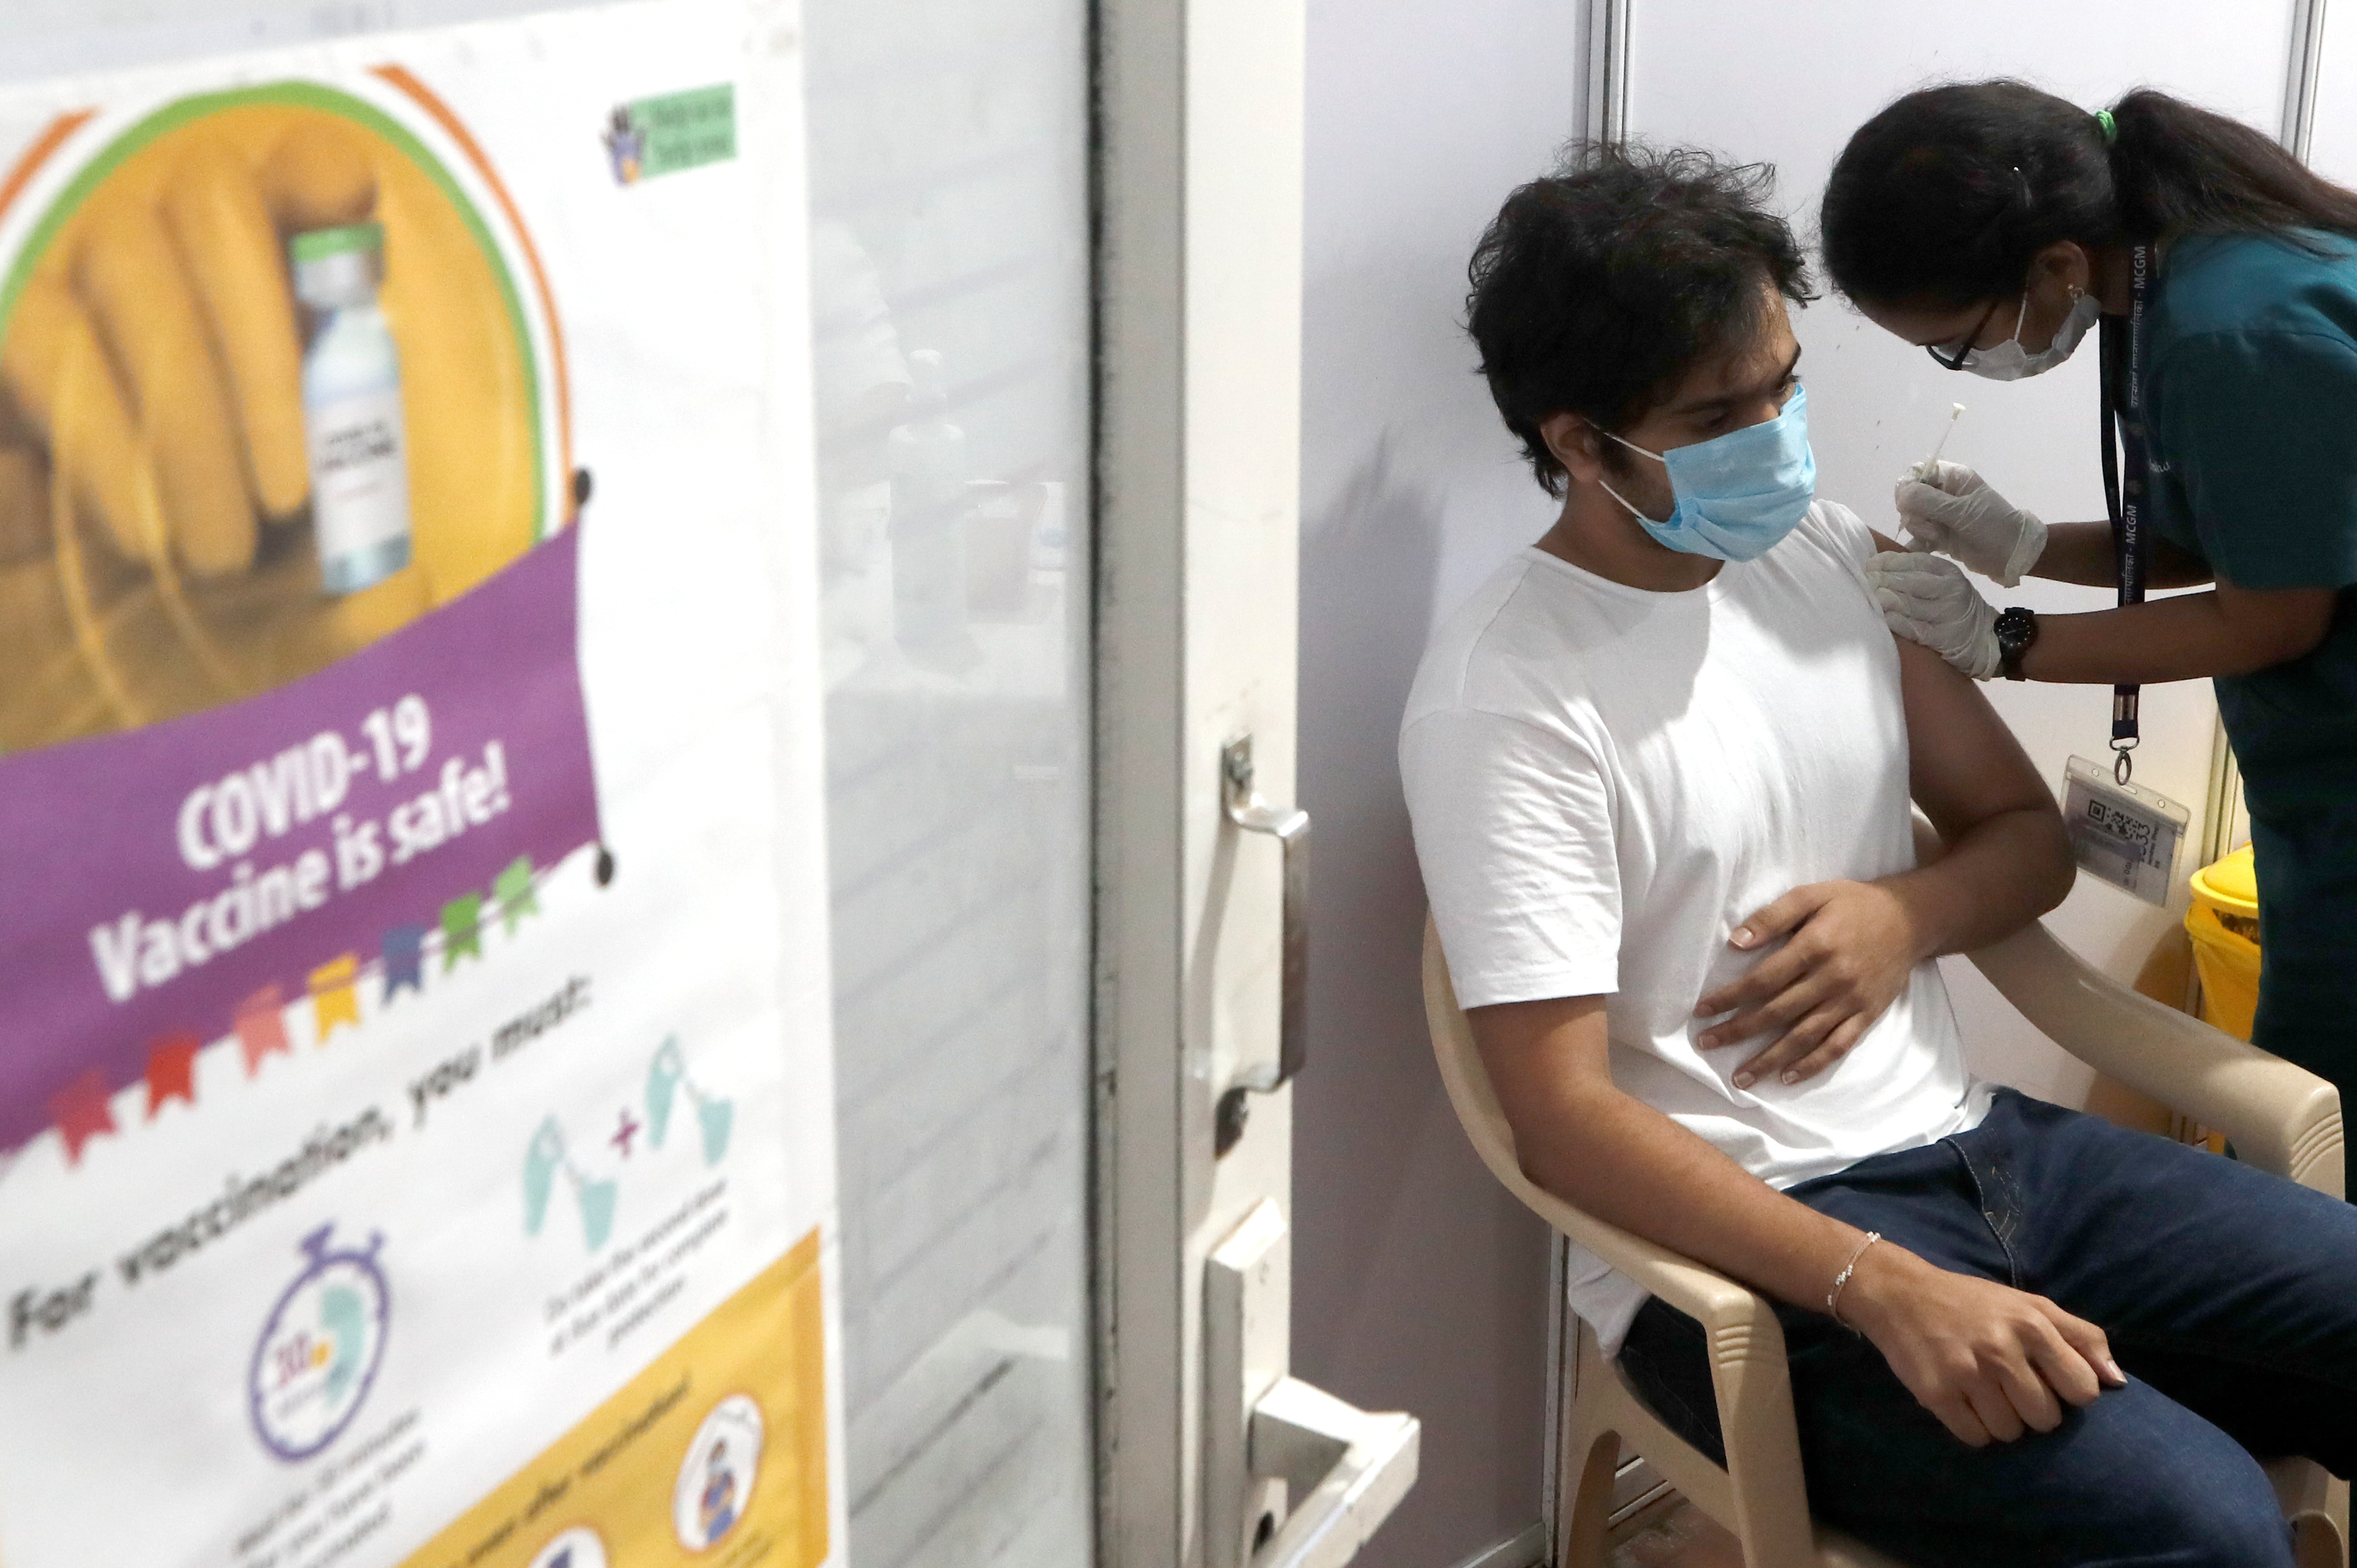 A man receives a dose of COVISHIELD, a coronavirus disease (COVID-19) vaccine manufactured by Serum Institute of India, at a vaccination centre in Mumbai, India, May 1, 2021. REUTERS/Francis Mascarenhas